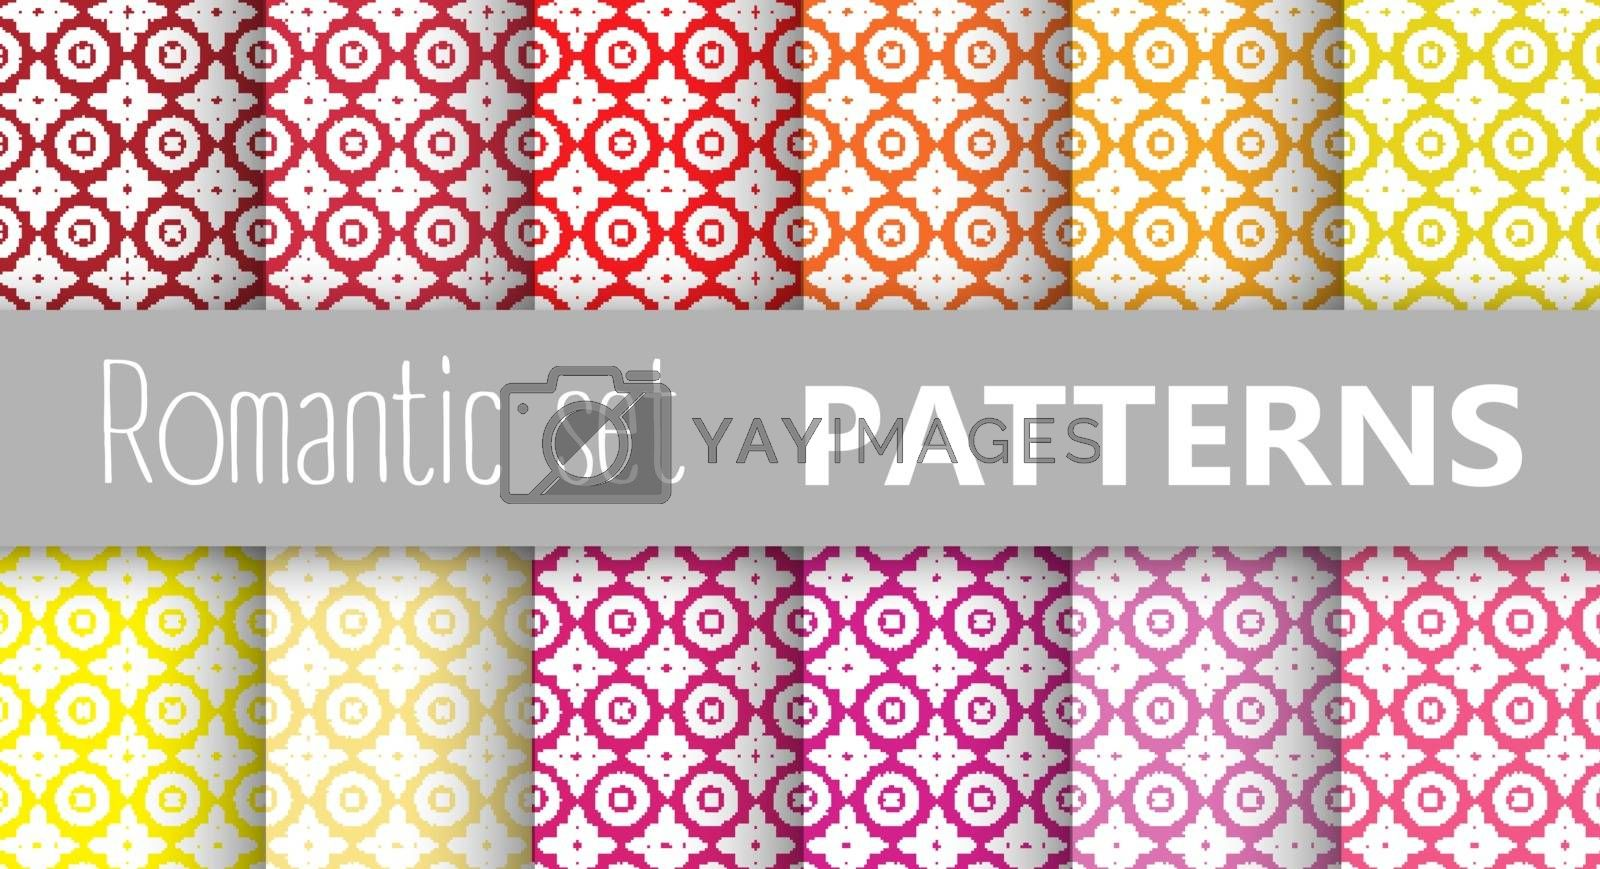 Pastel retro vector patterns tiling. Endless texture can be used for printing onto fabric and paper or scrap booking, surface textile, web page background. Flower abstract shapes